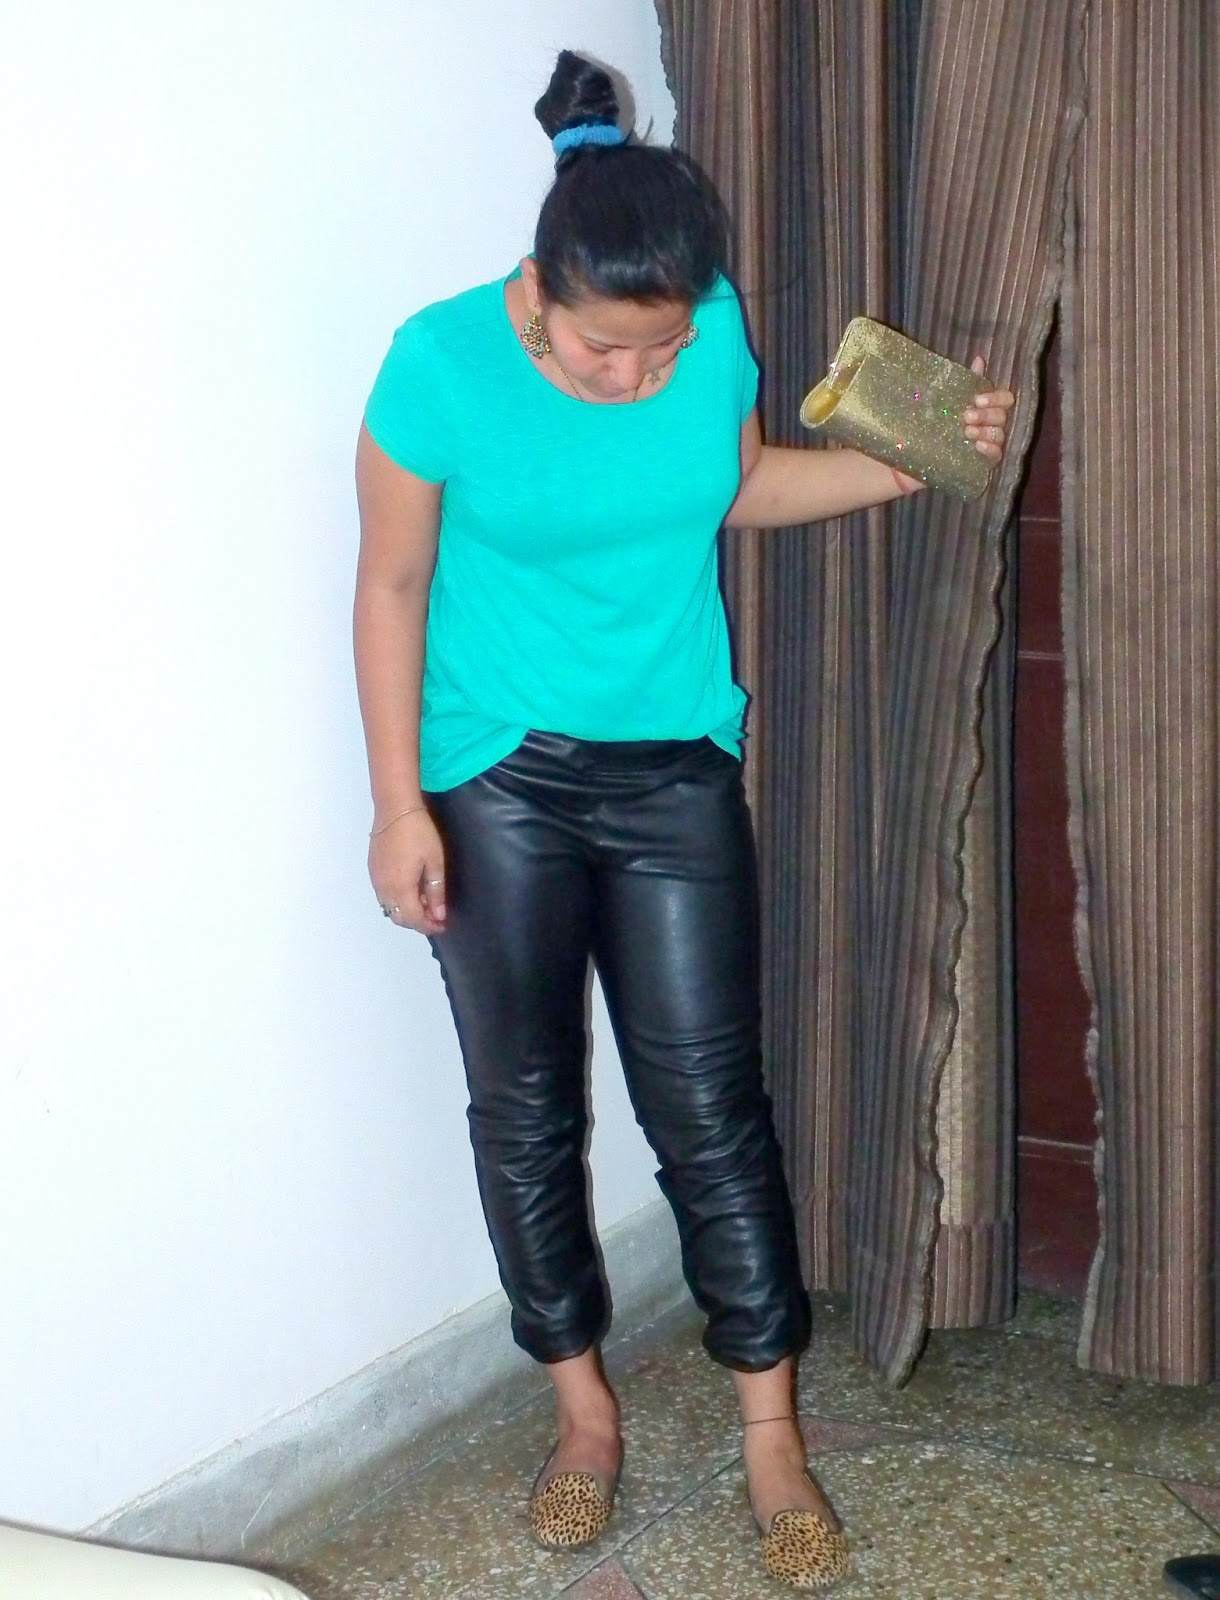 675869b8 Outfit | Styling Cyan Tshirt with Faux Leather and Leopard Print ...